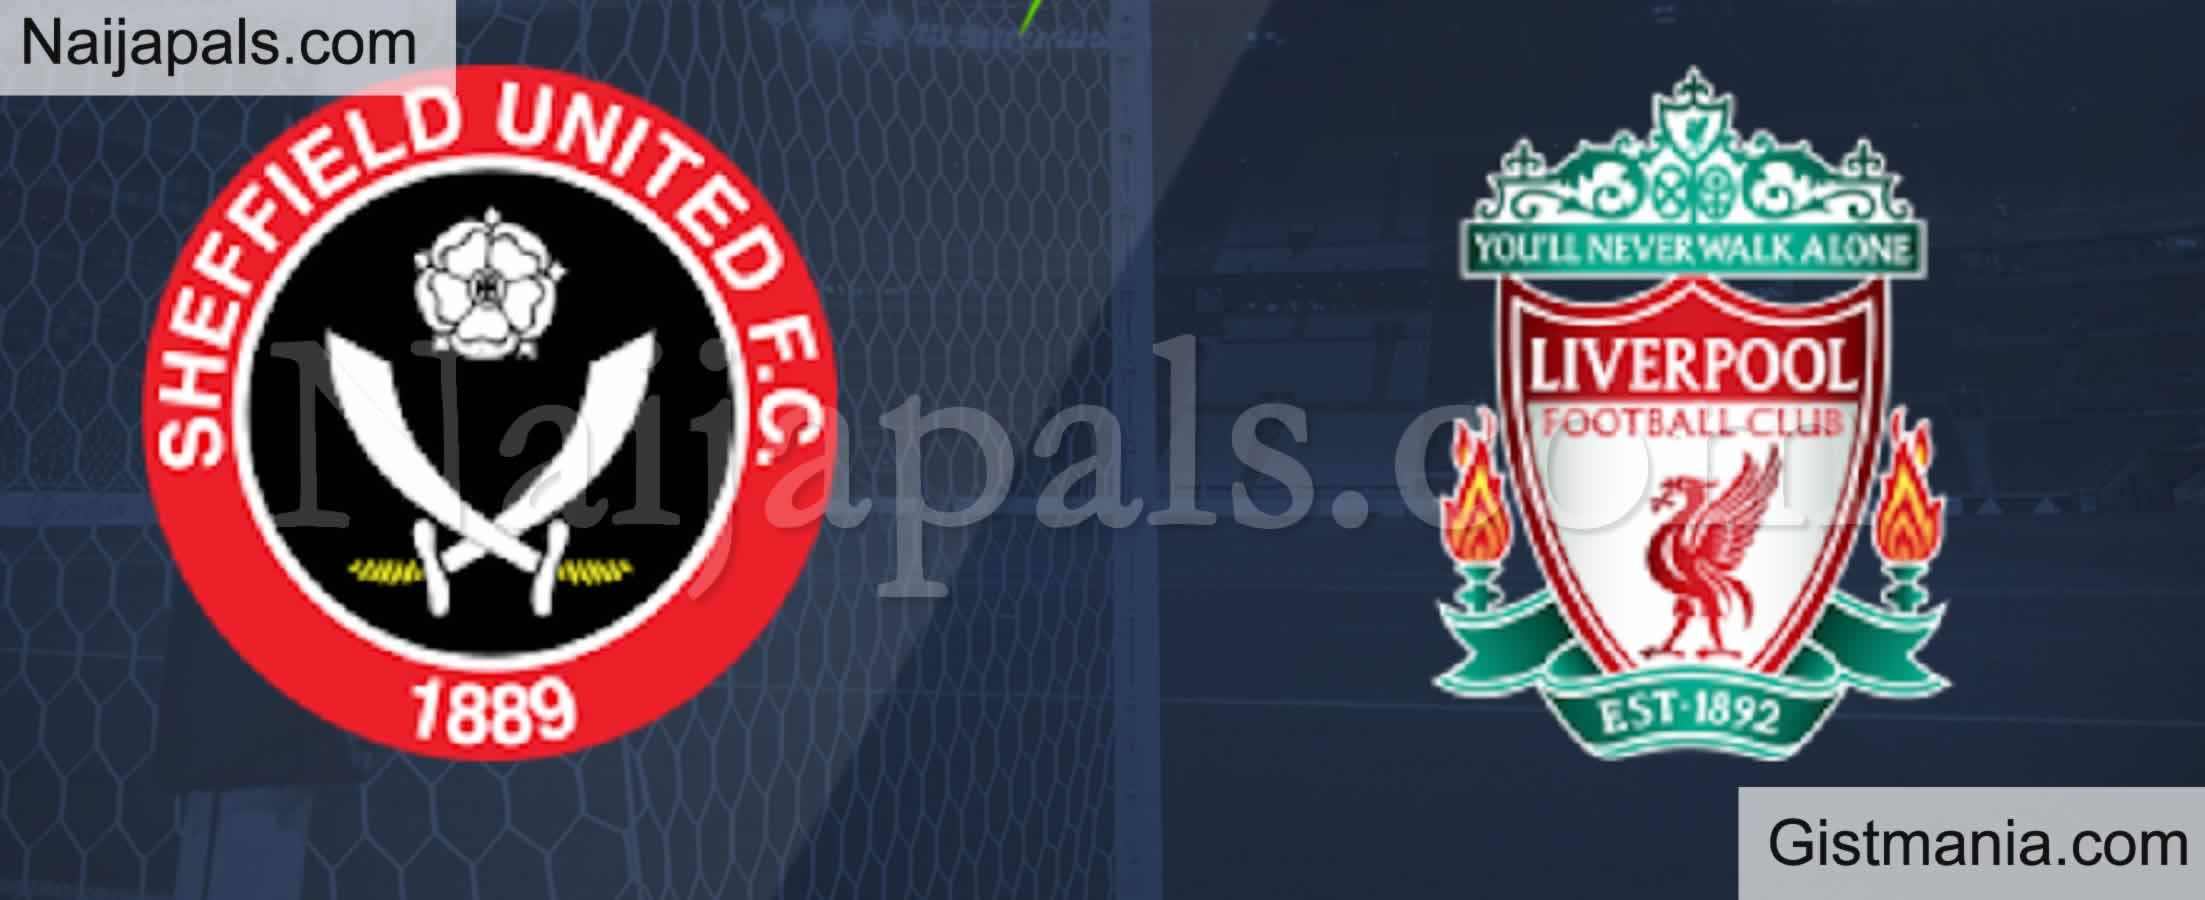 <img alt='.' class='lazyload' data-src='https://img.gistmania.com/emot/soccer.gif' /> <b>Sheffield United v Liverpool: English Premier League Match, Team News, Goal Scorers and Stats</b>